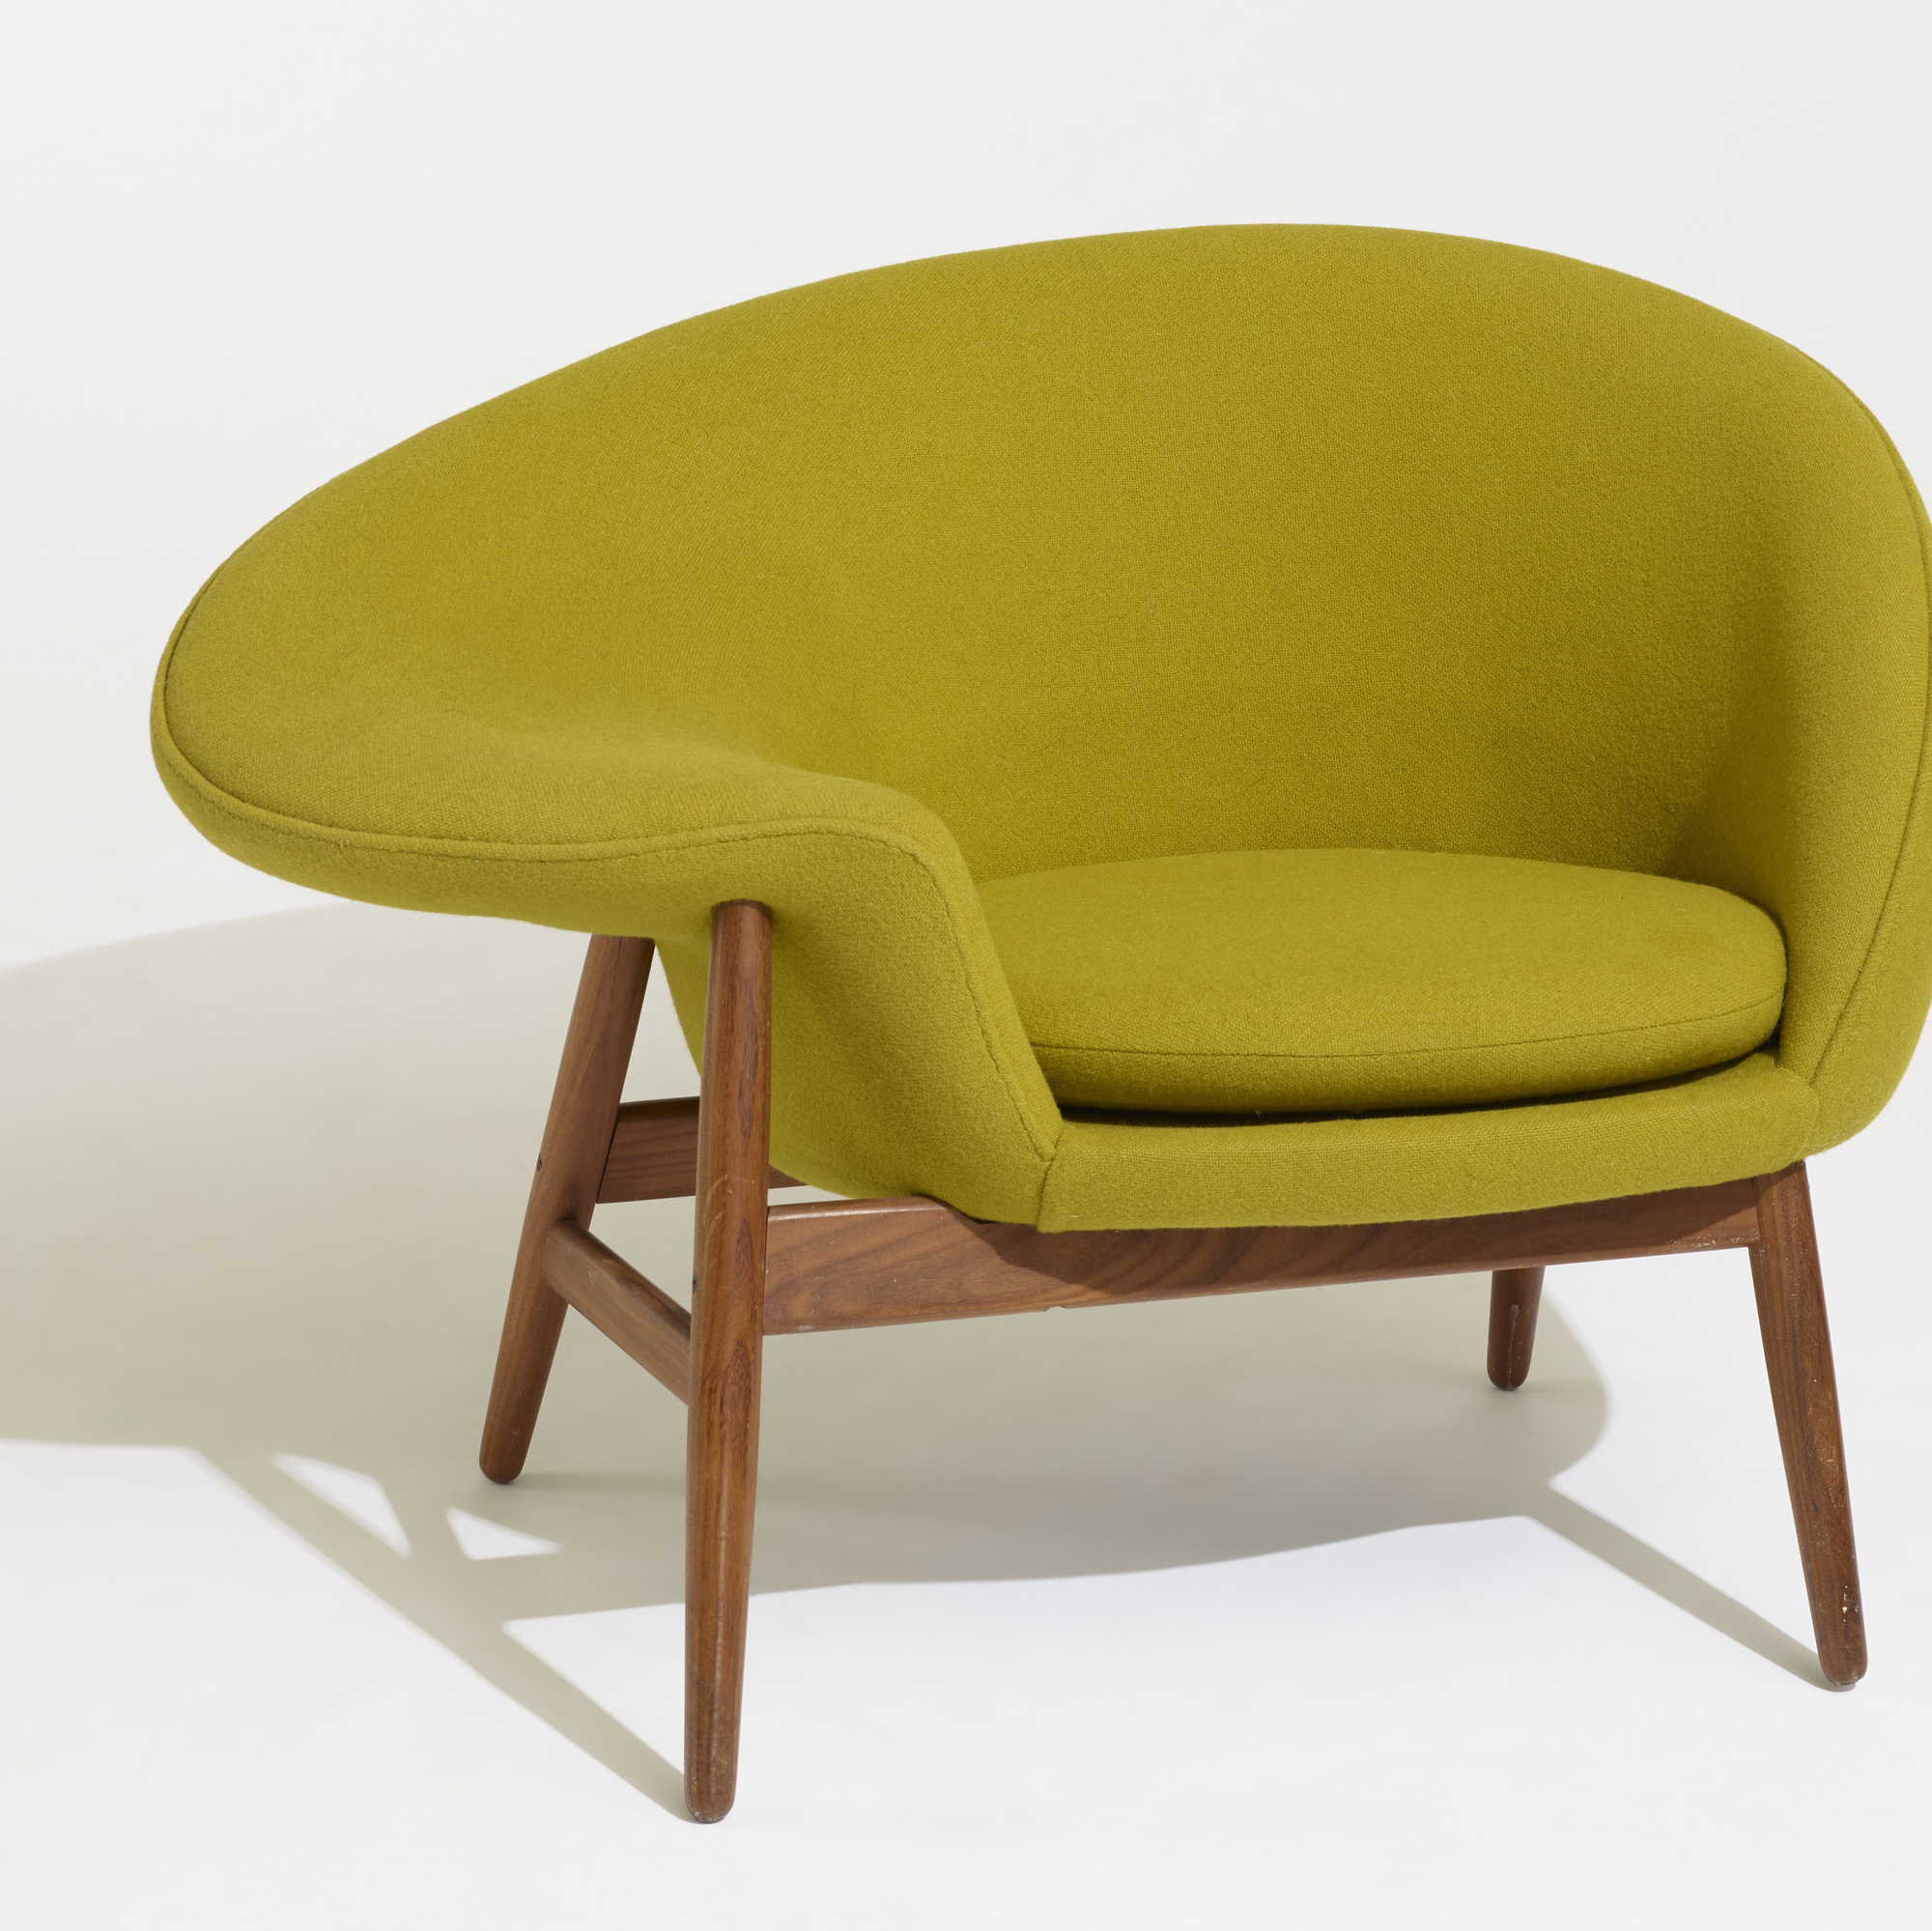 224: Hans Olsen / lounge chair, model 188 (4 of 4)